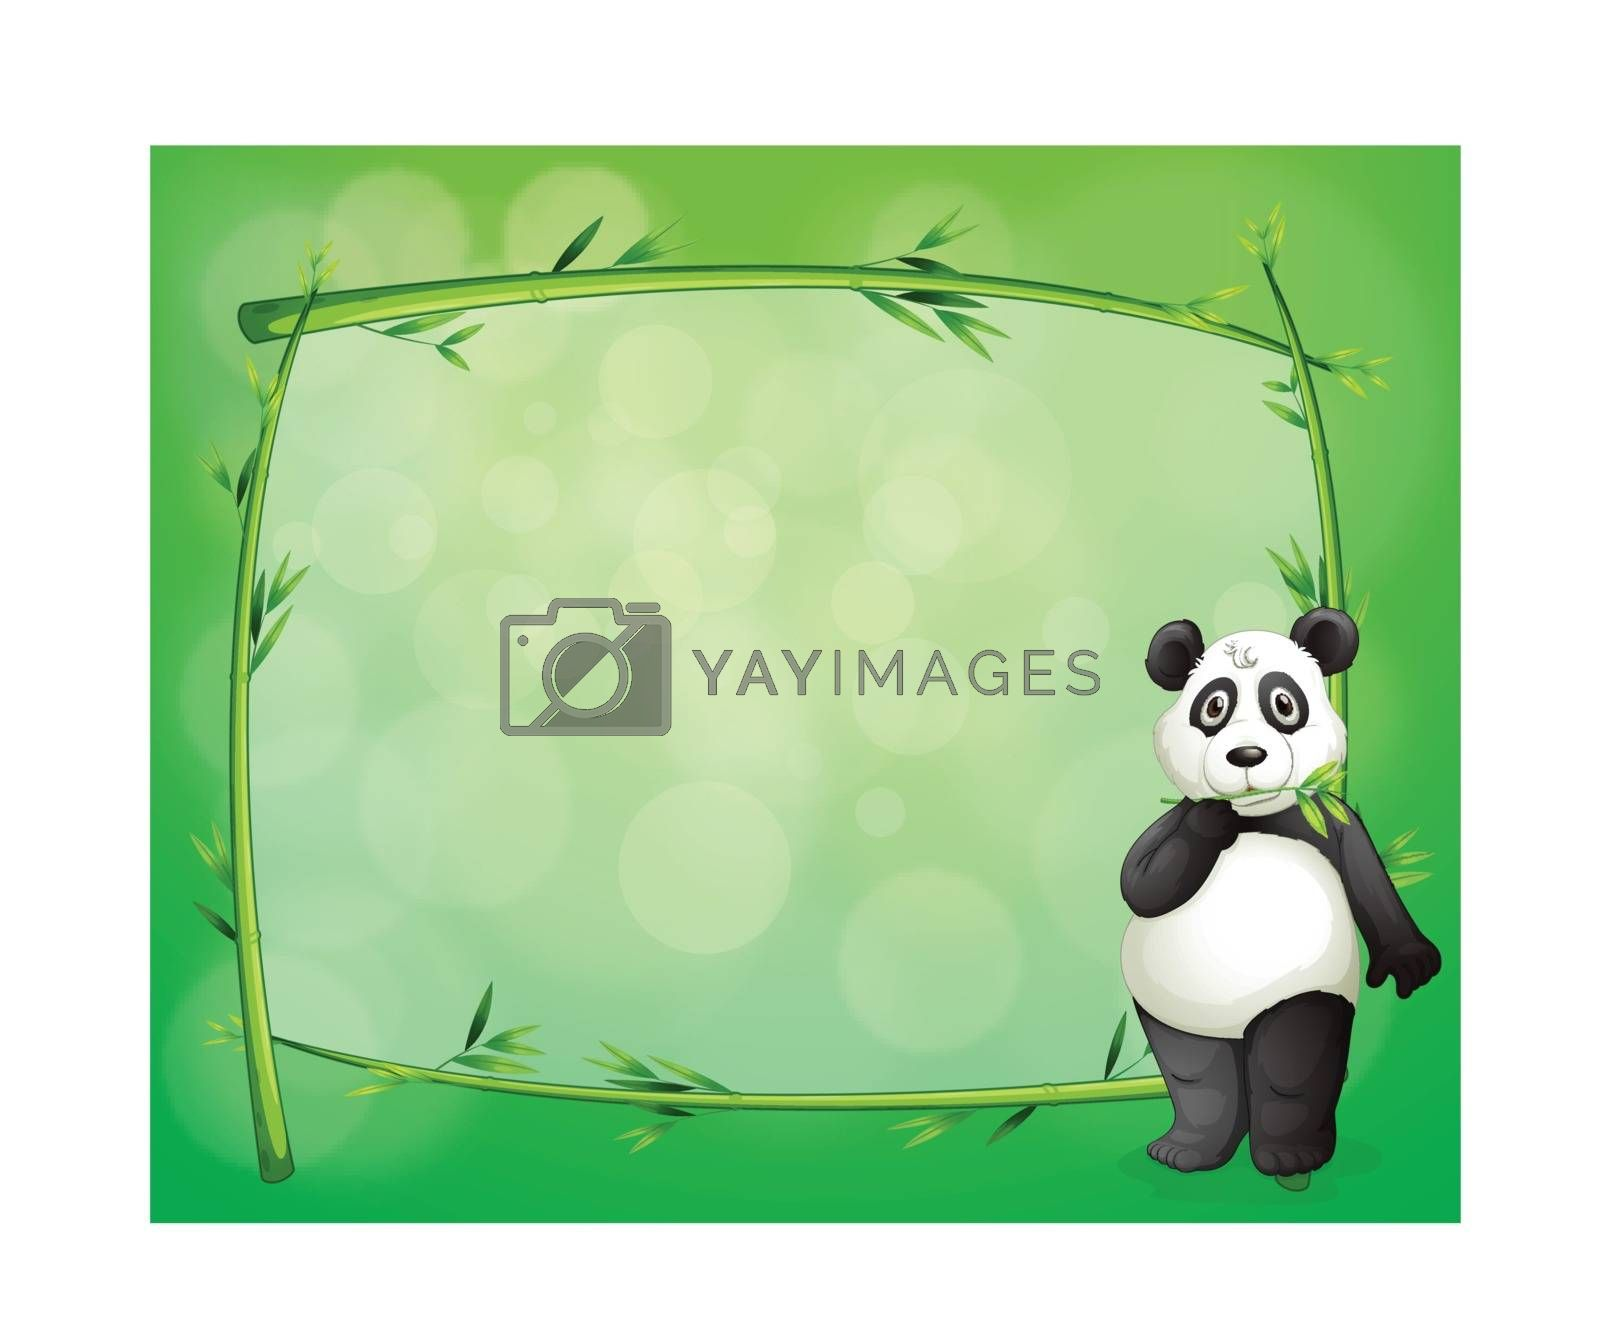 Illustration of a panda beside a frame made of bamboo